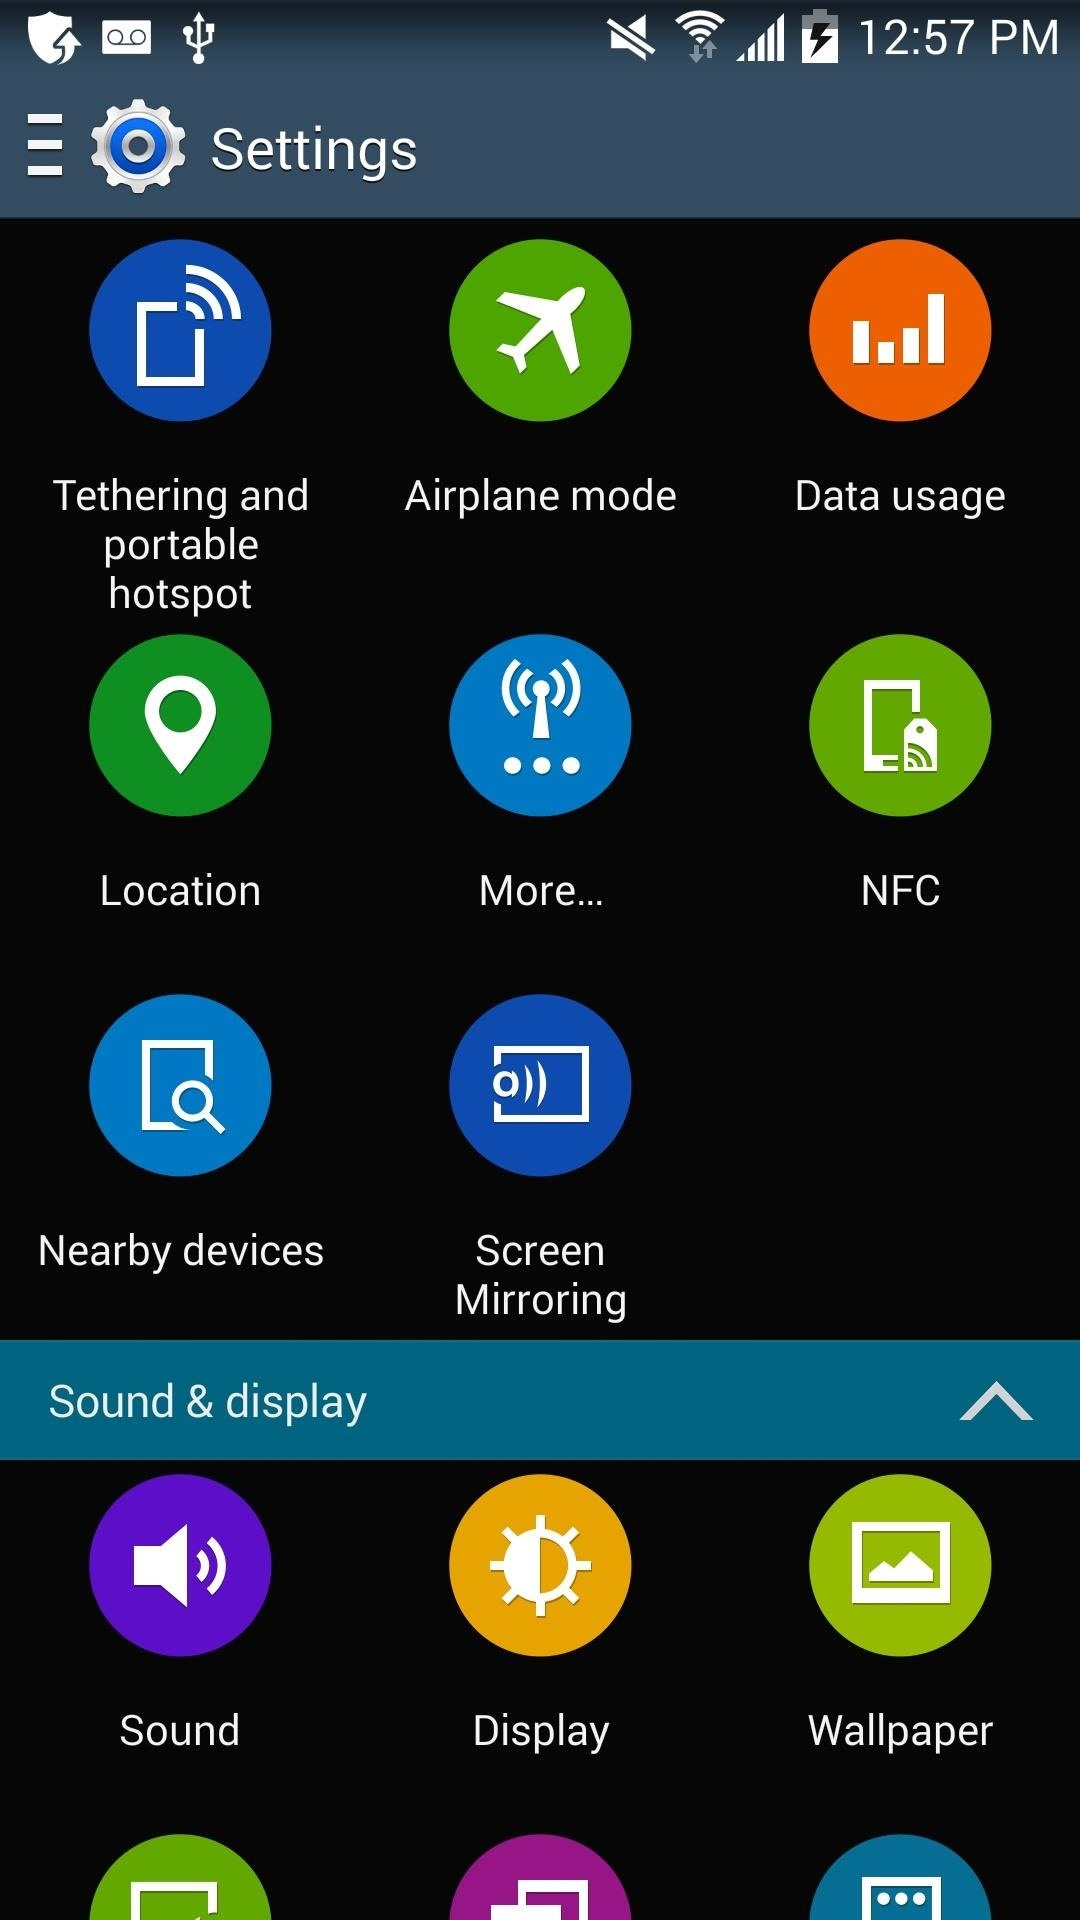 How to Turn Your Samsung Galaxy Note 3 into a Galaxy S5